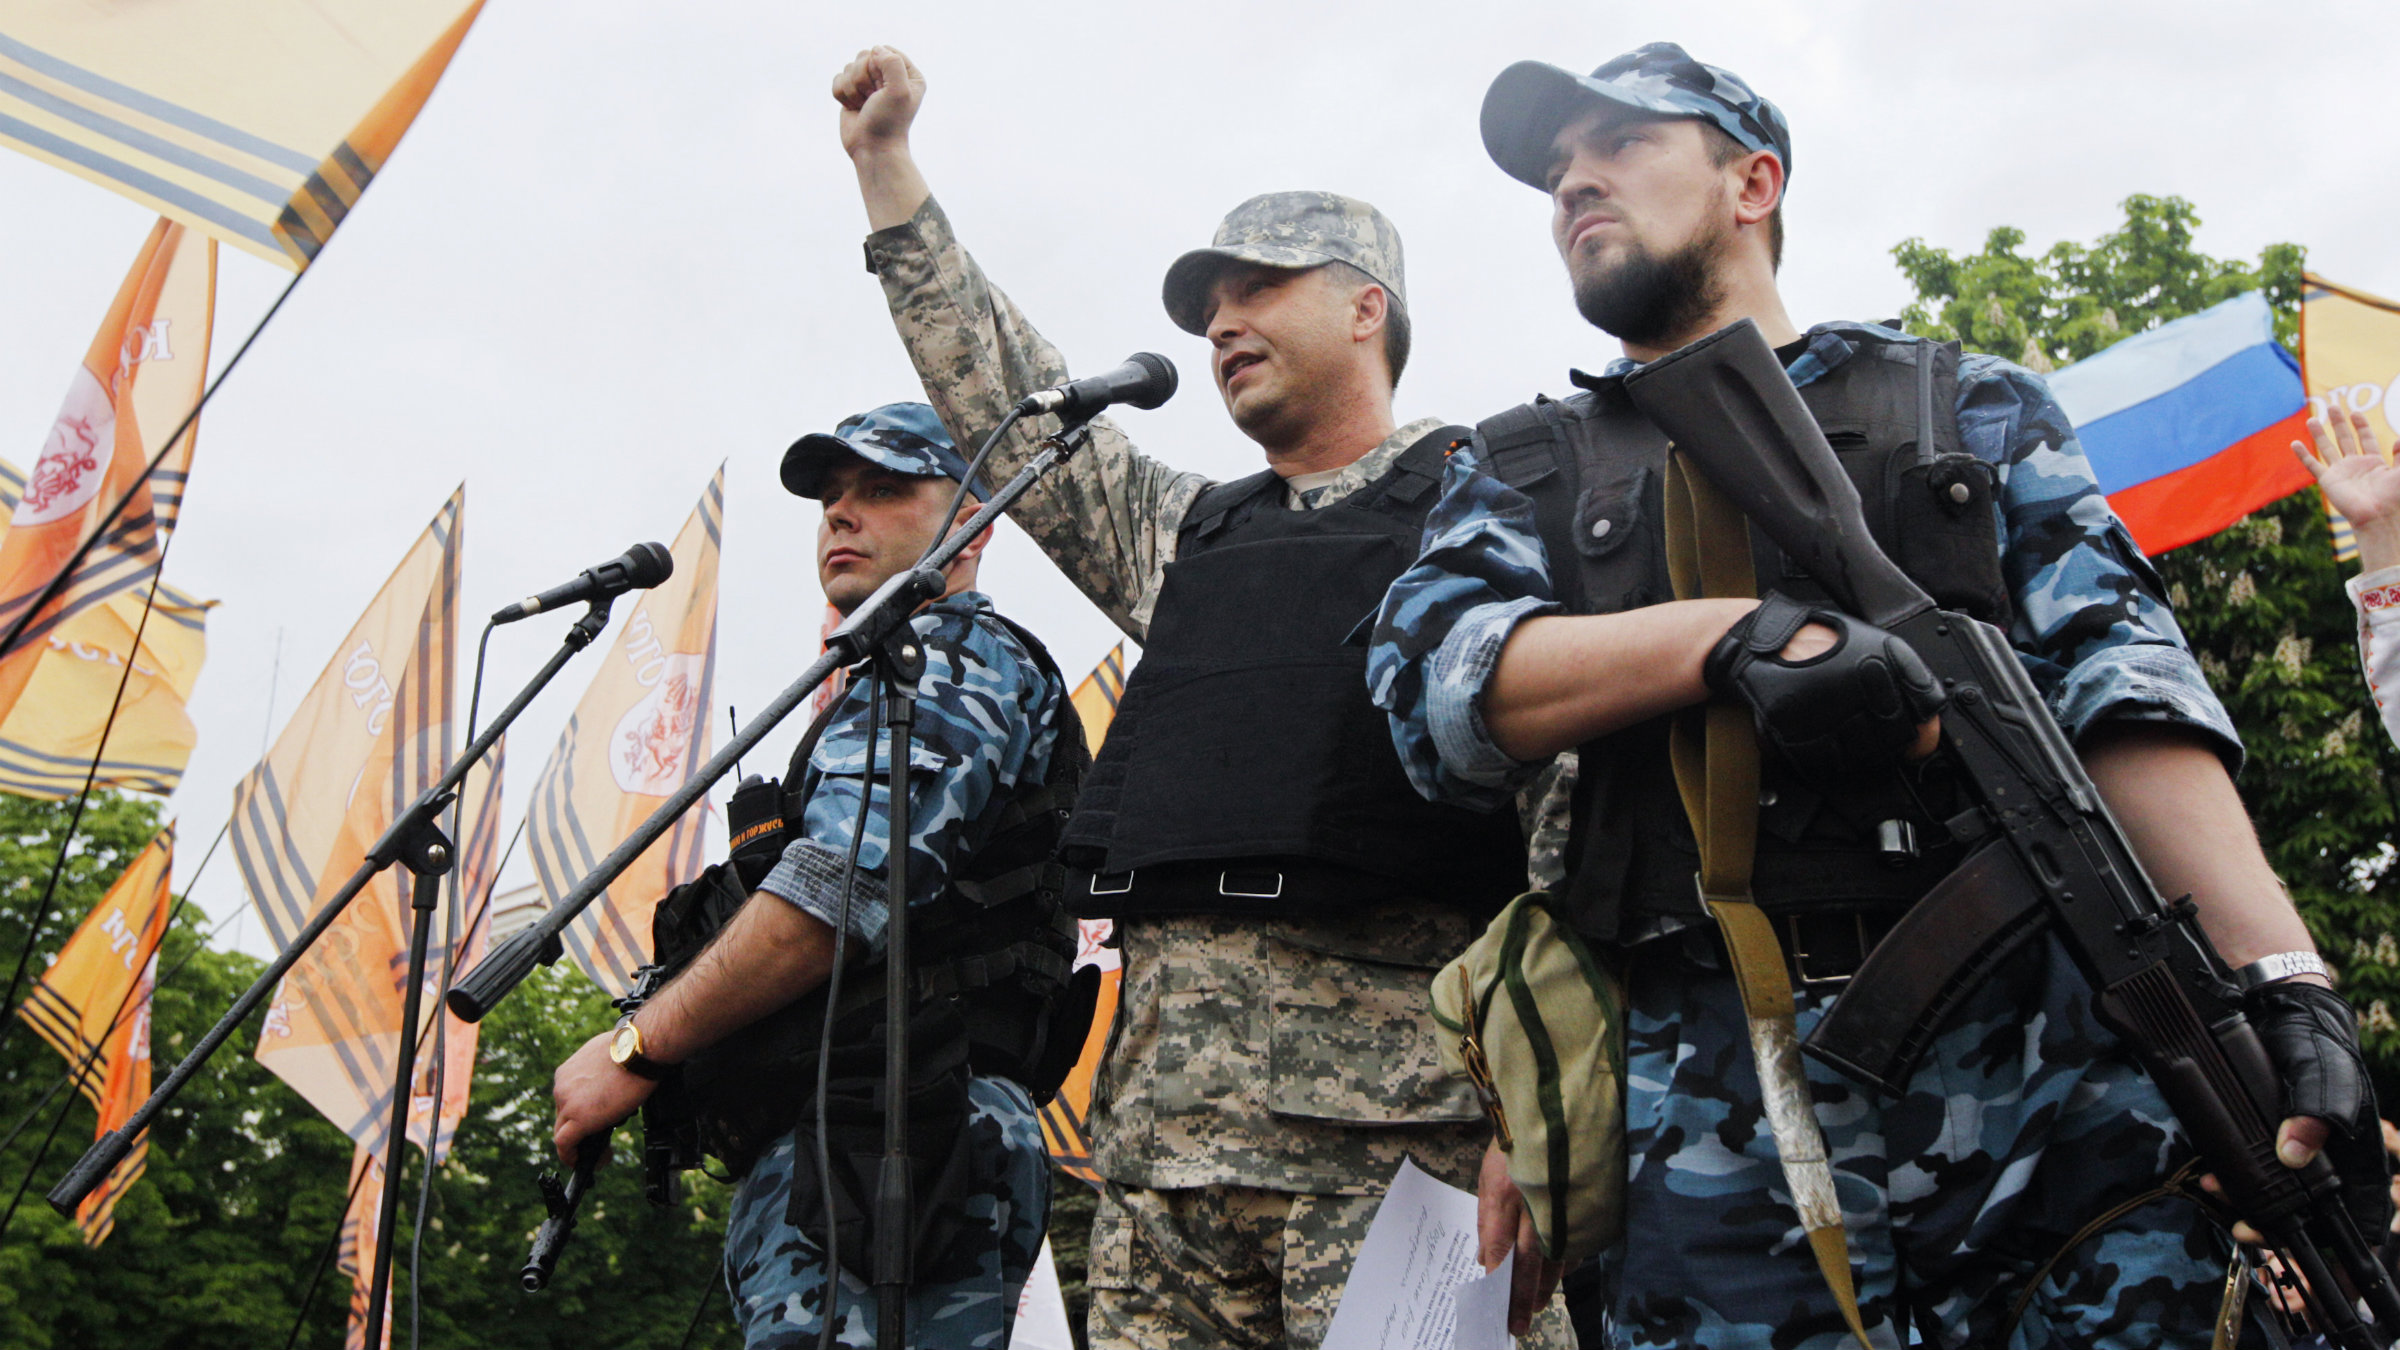 Separatists in Luhansk want the region, and its manufacturing base, out of Kyiv's control.